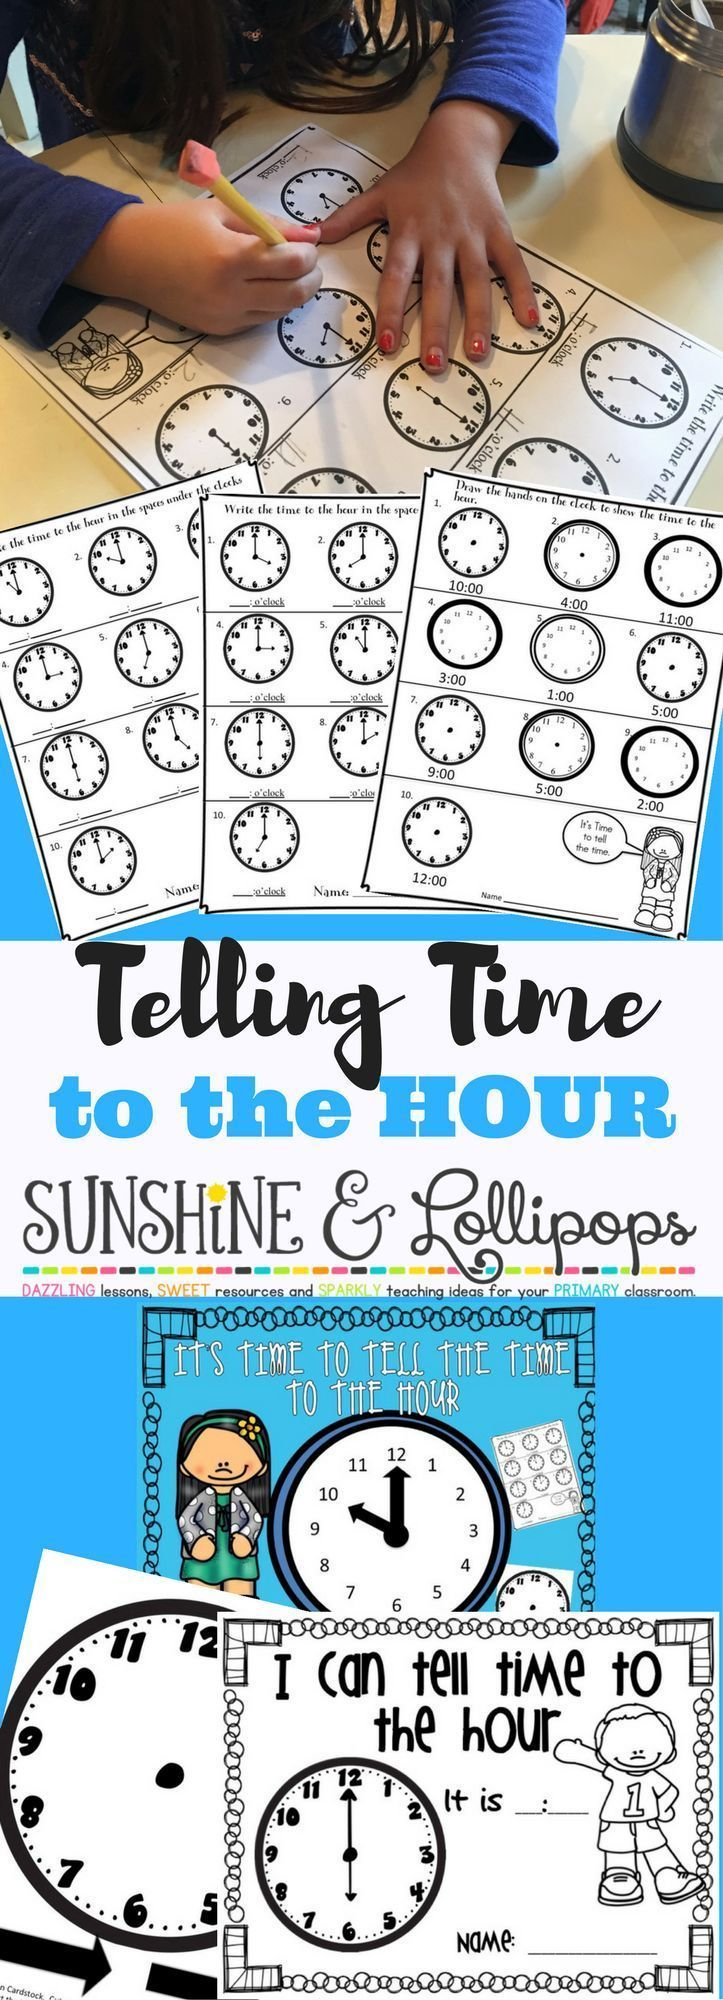 Telling time can be difficult these days since no one really has an analogue clock in their house anymore. Yet, this is an important life skill. This resource supports telling time to the hour and is the first of a series I created for remediation, introd